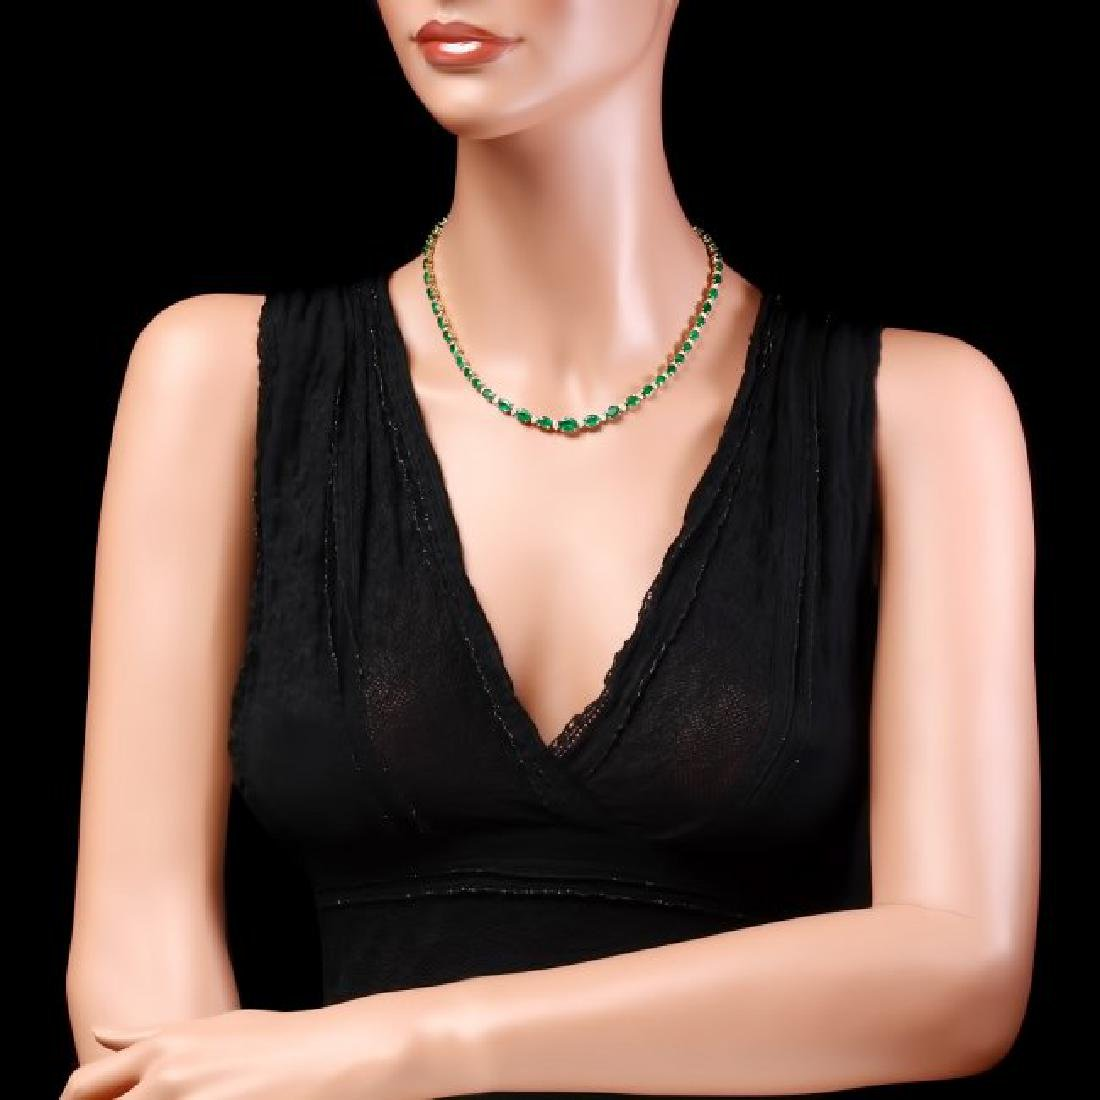 14k Gold 23ct Emerald 1.10ct Diamond Necklace - 5